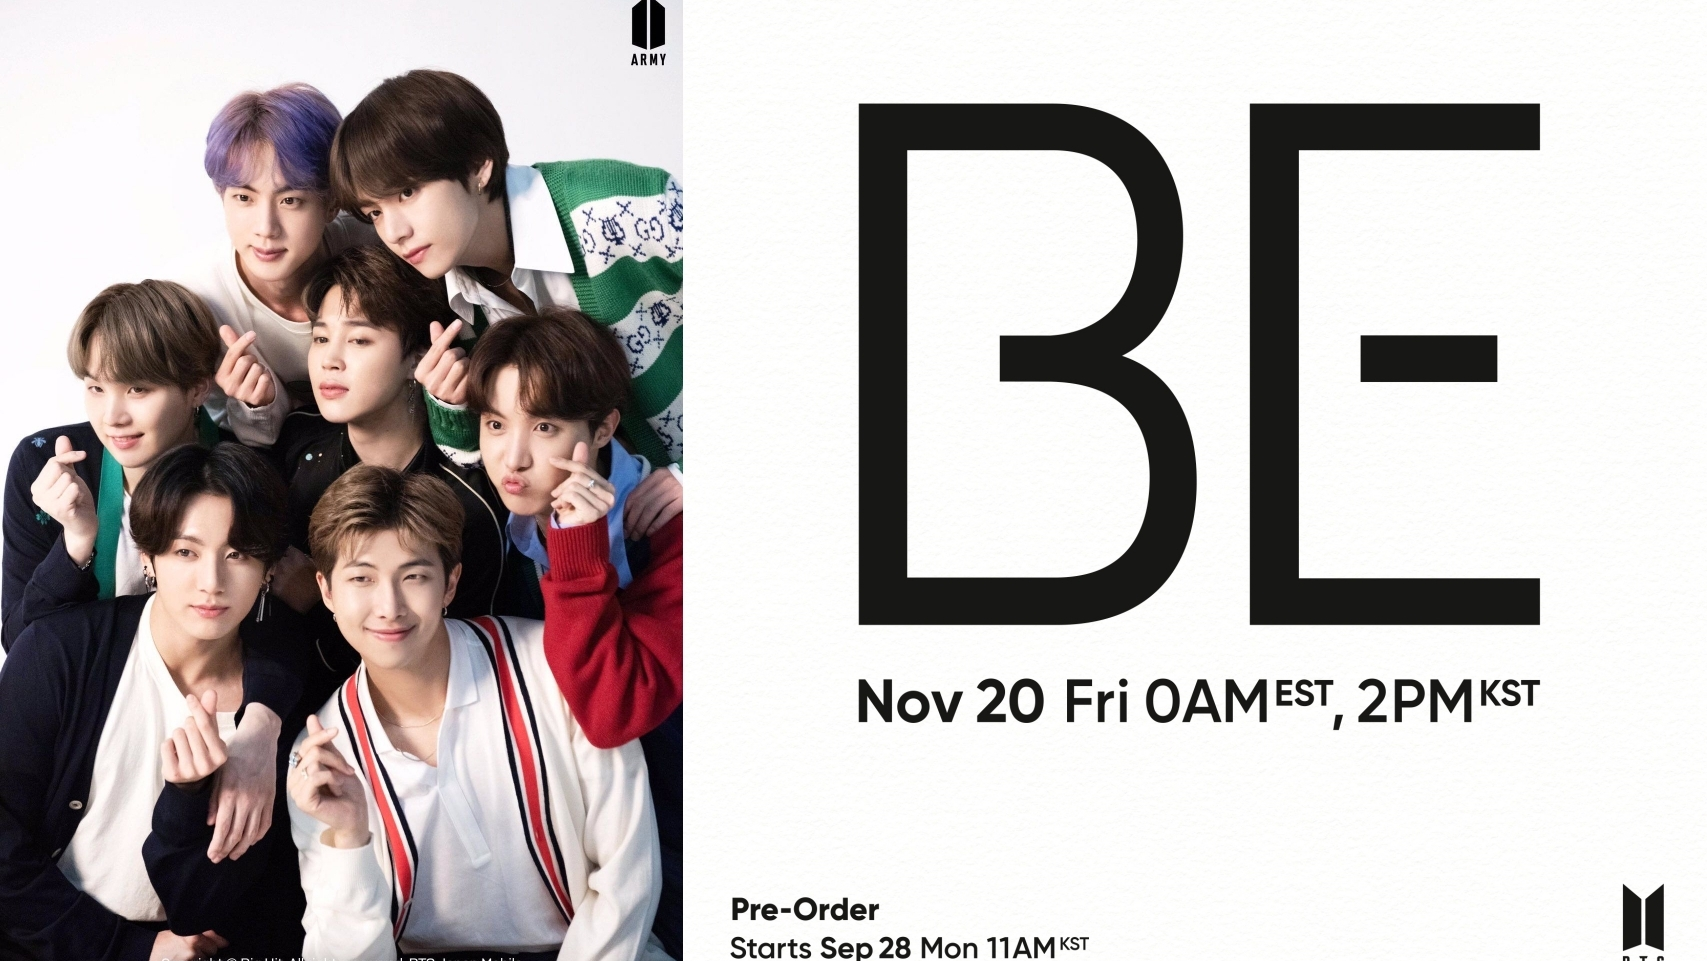 Big Hit Announces BTS Comeback in November With Album 'BE'